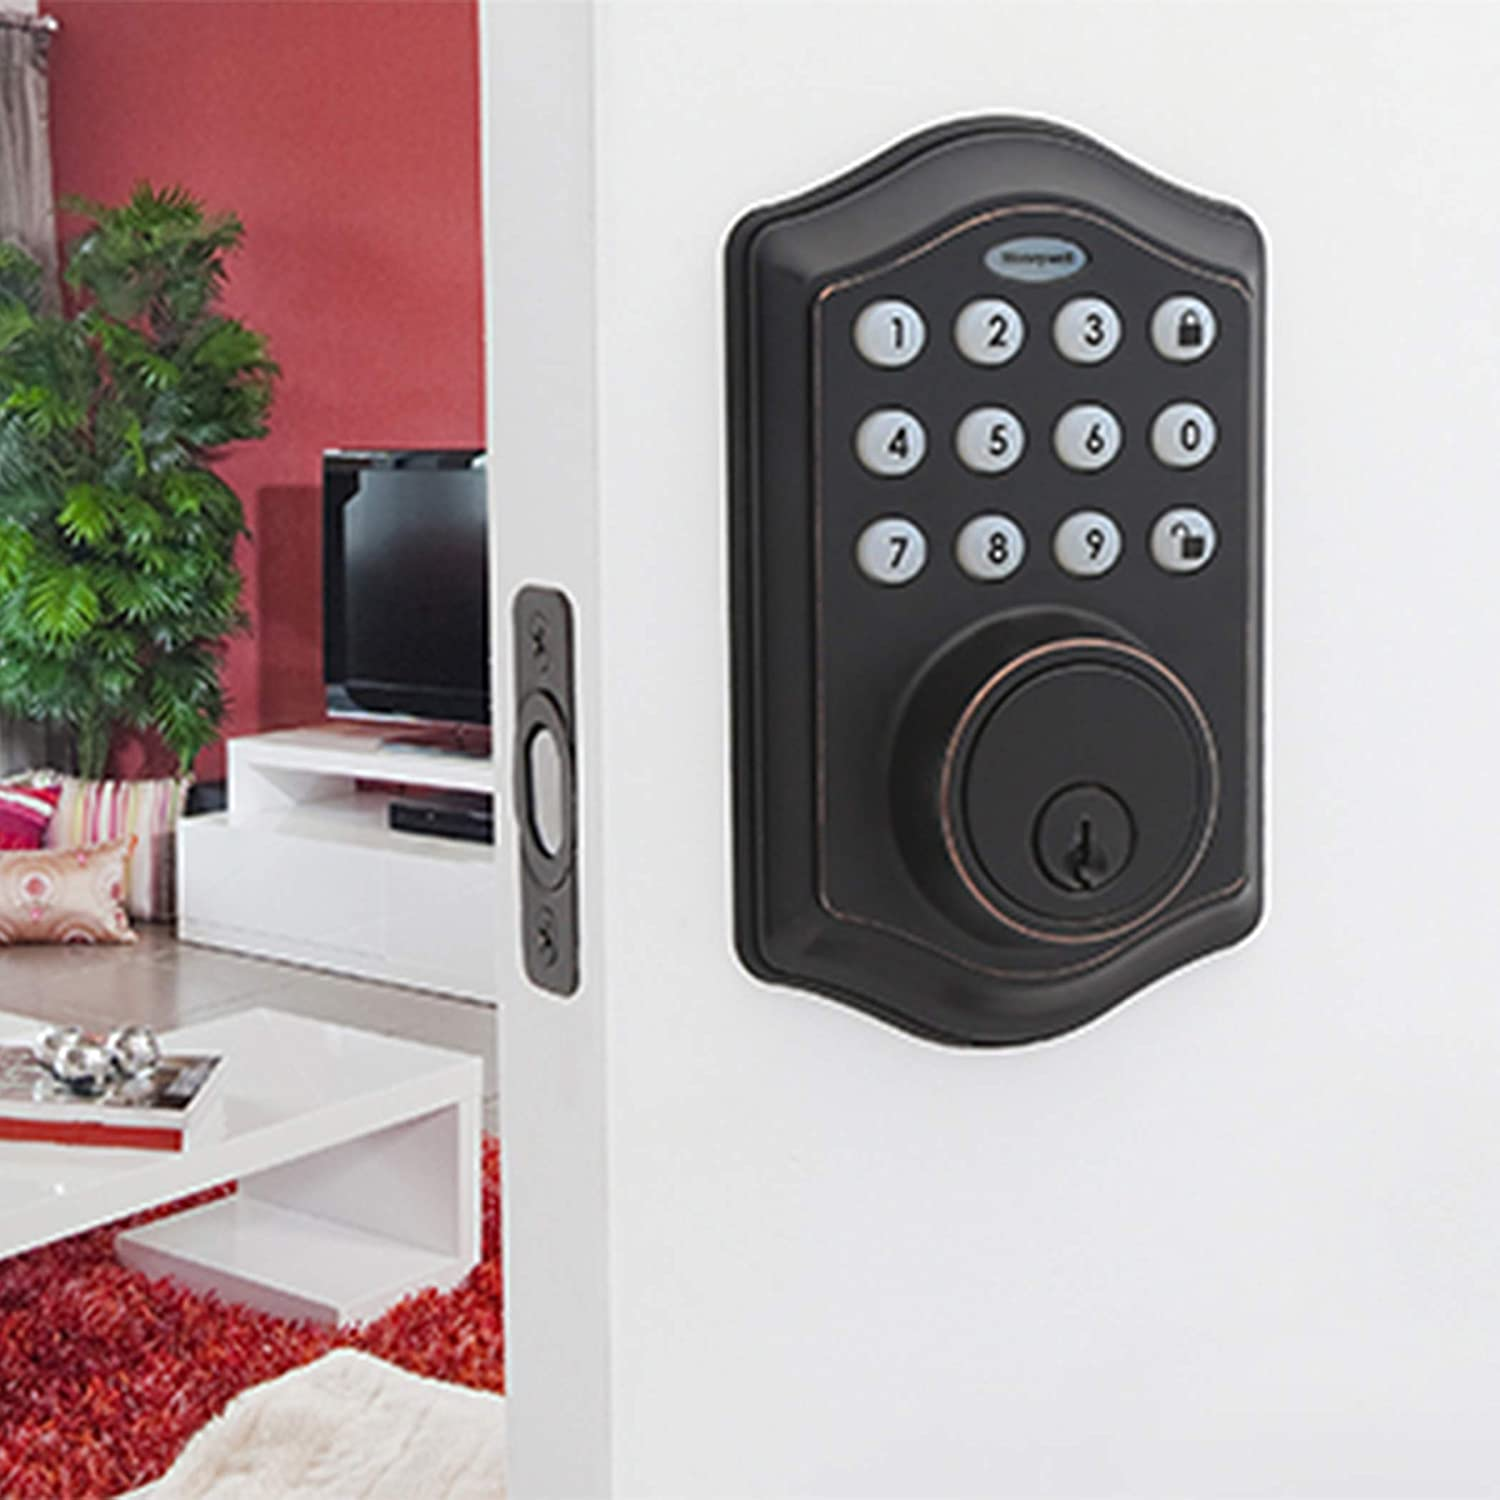 Honeywell Safes Door Locks 8712409 Electronic Entry Deadbolt Security Key Combination Lock Circuits With Keypad Oil Rubbed Bronze